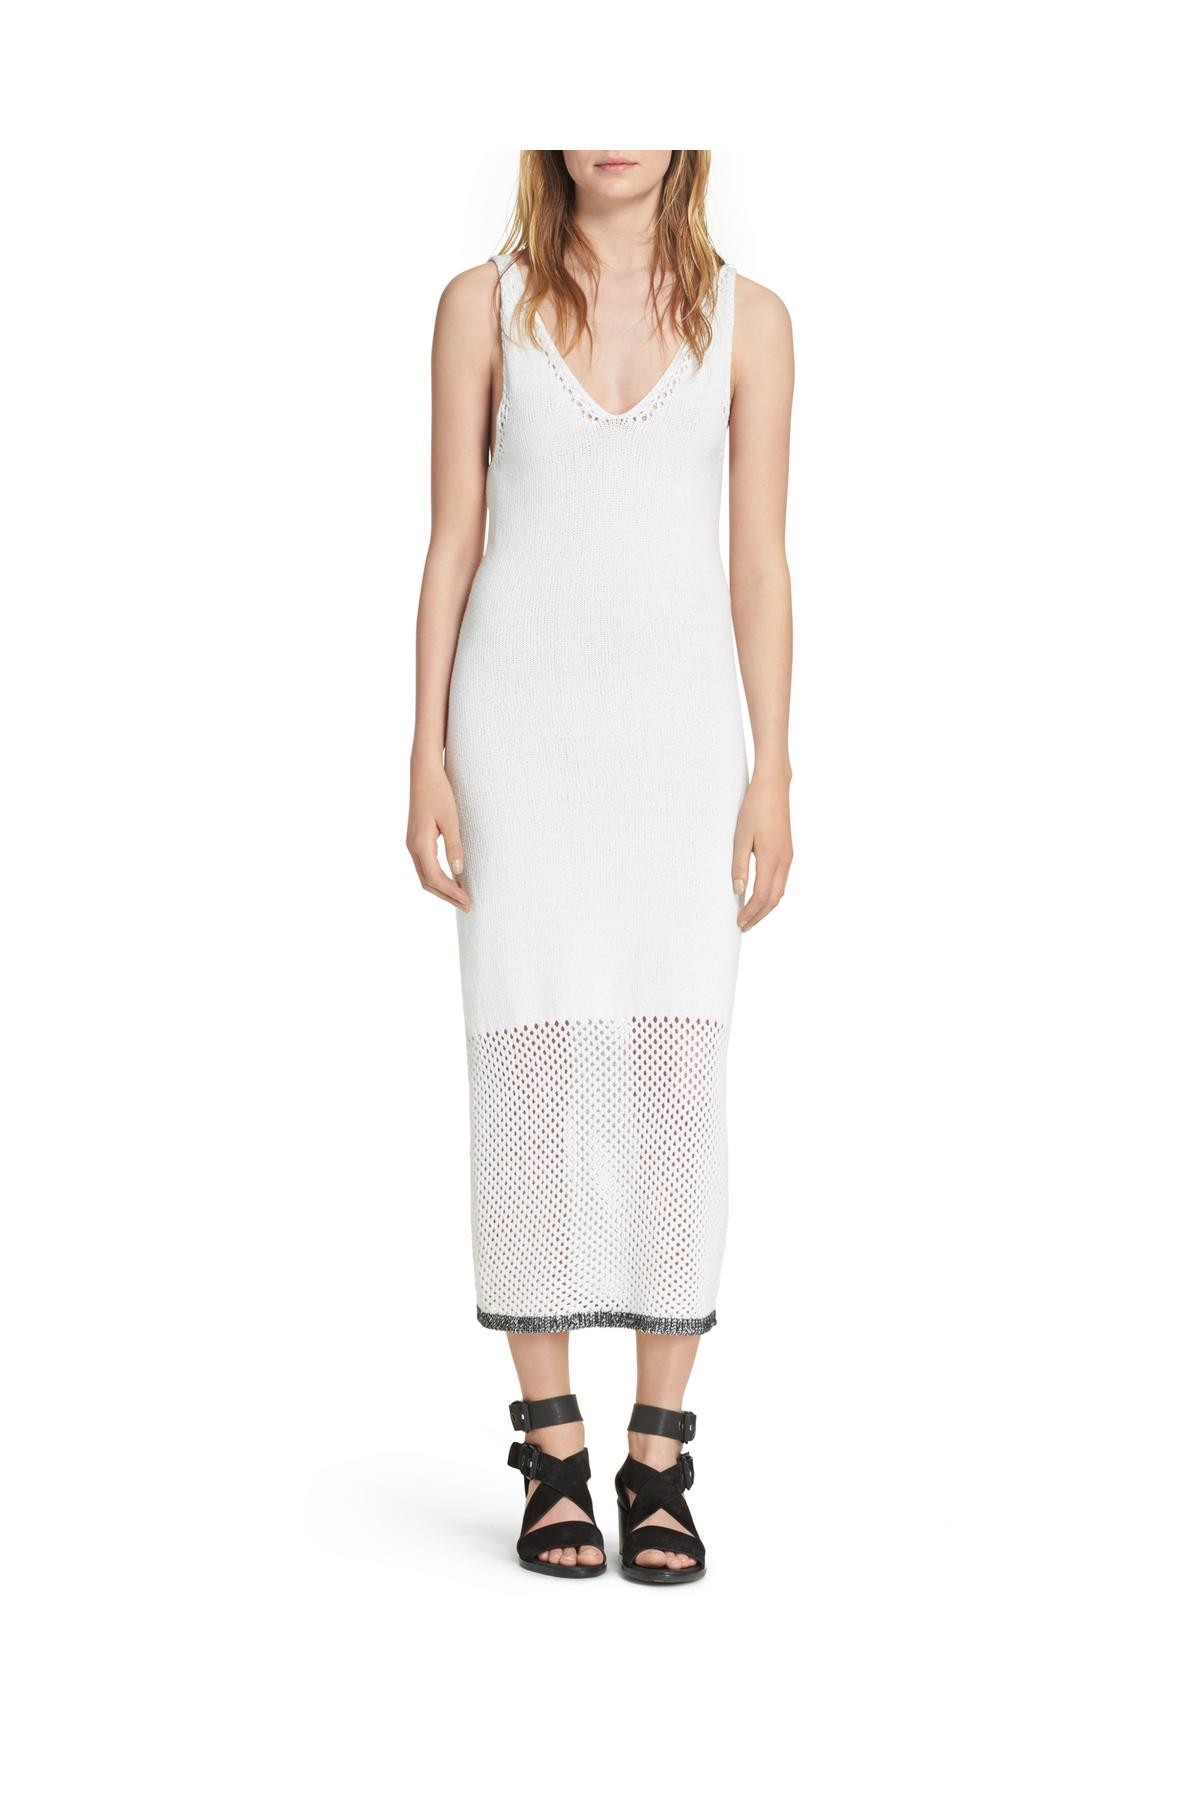 RAG & BONE THEA DRESS